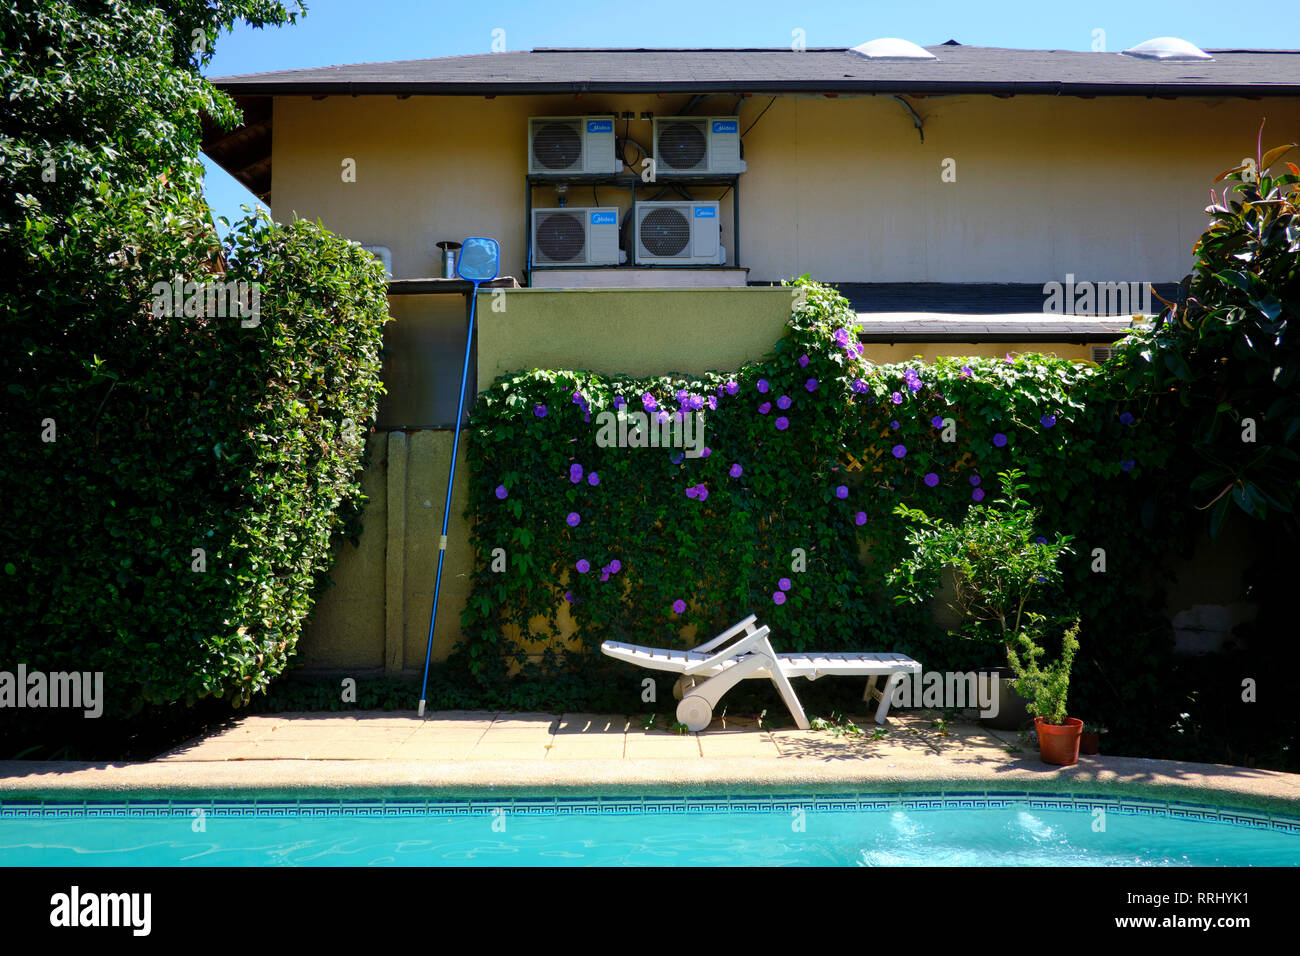 Garden with swimming pool and deck chair - Stock Image